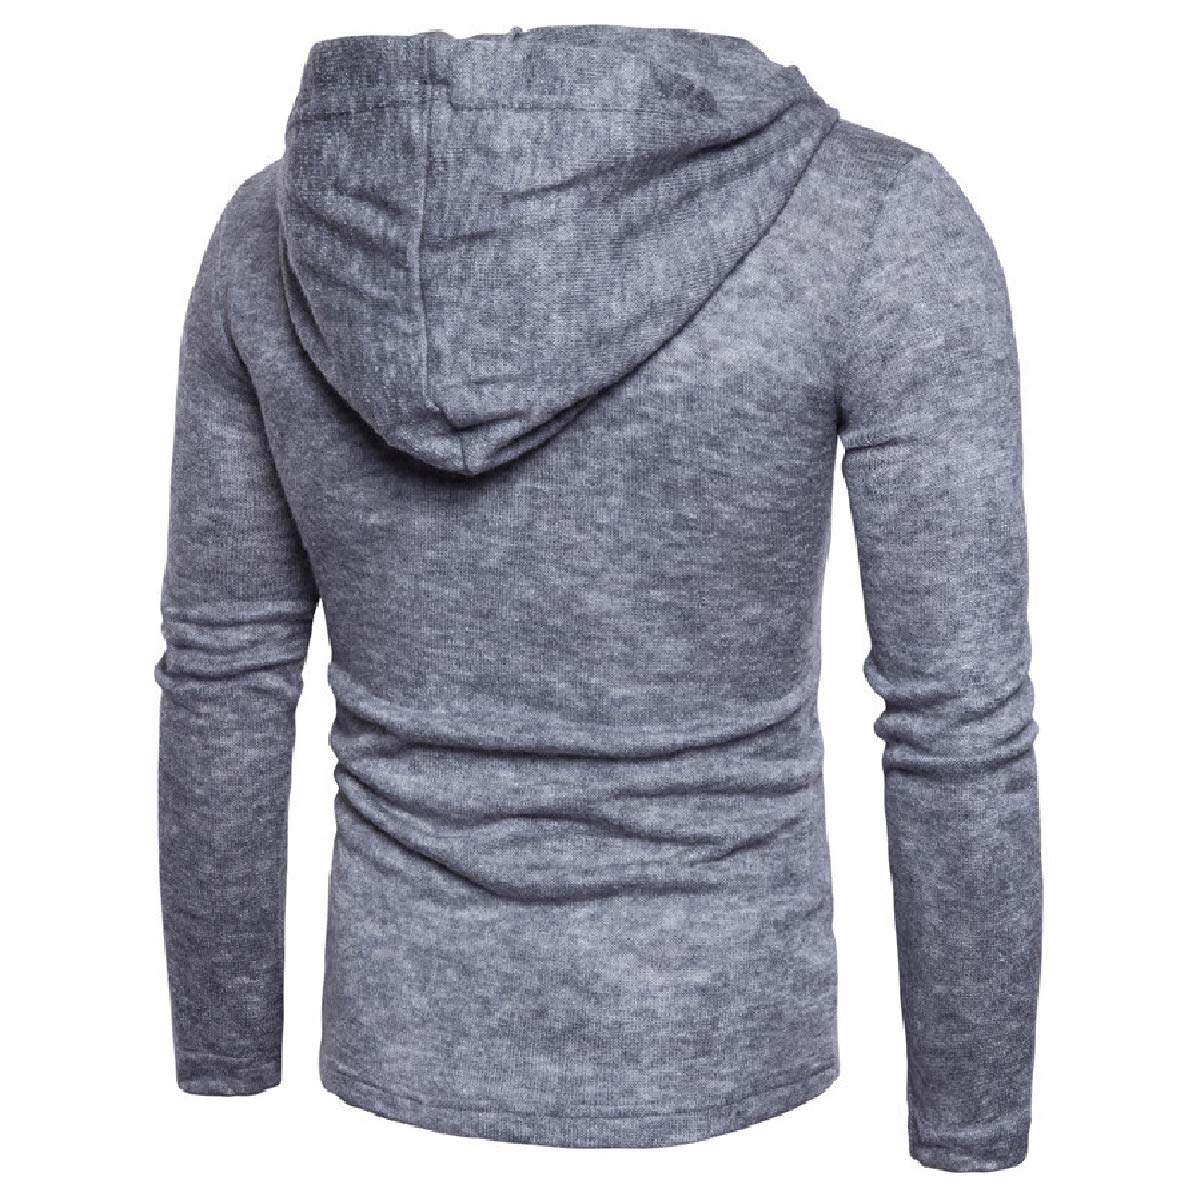 Zimaes-Men Hood Long Sleeve Solid Straps Simple Sweater Pullover